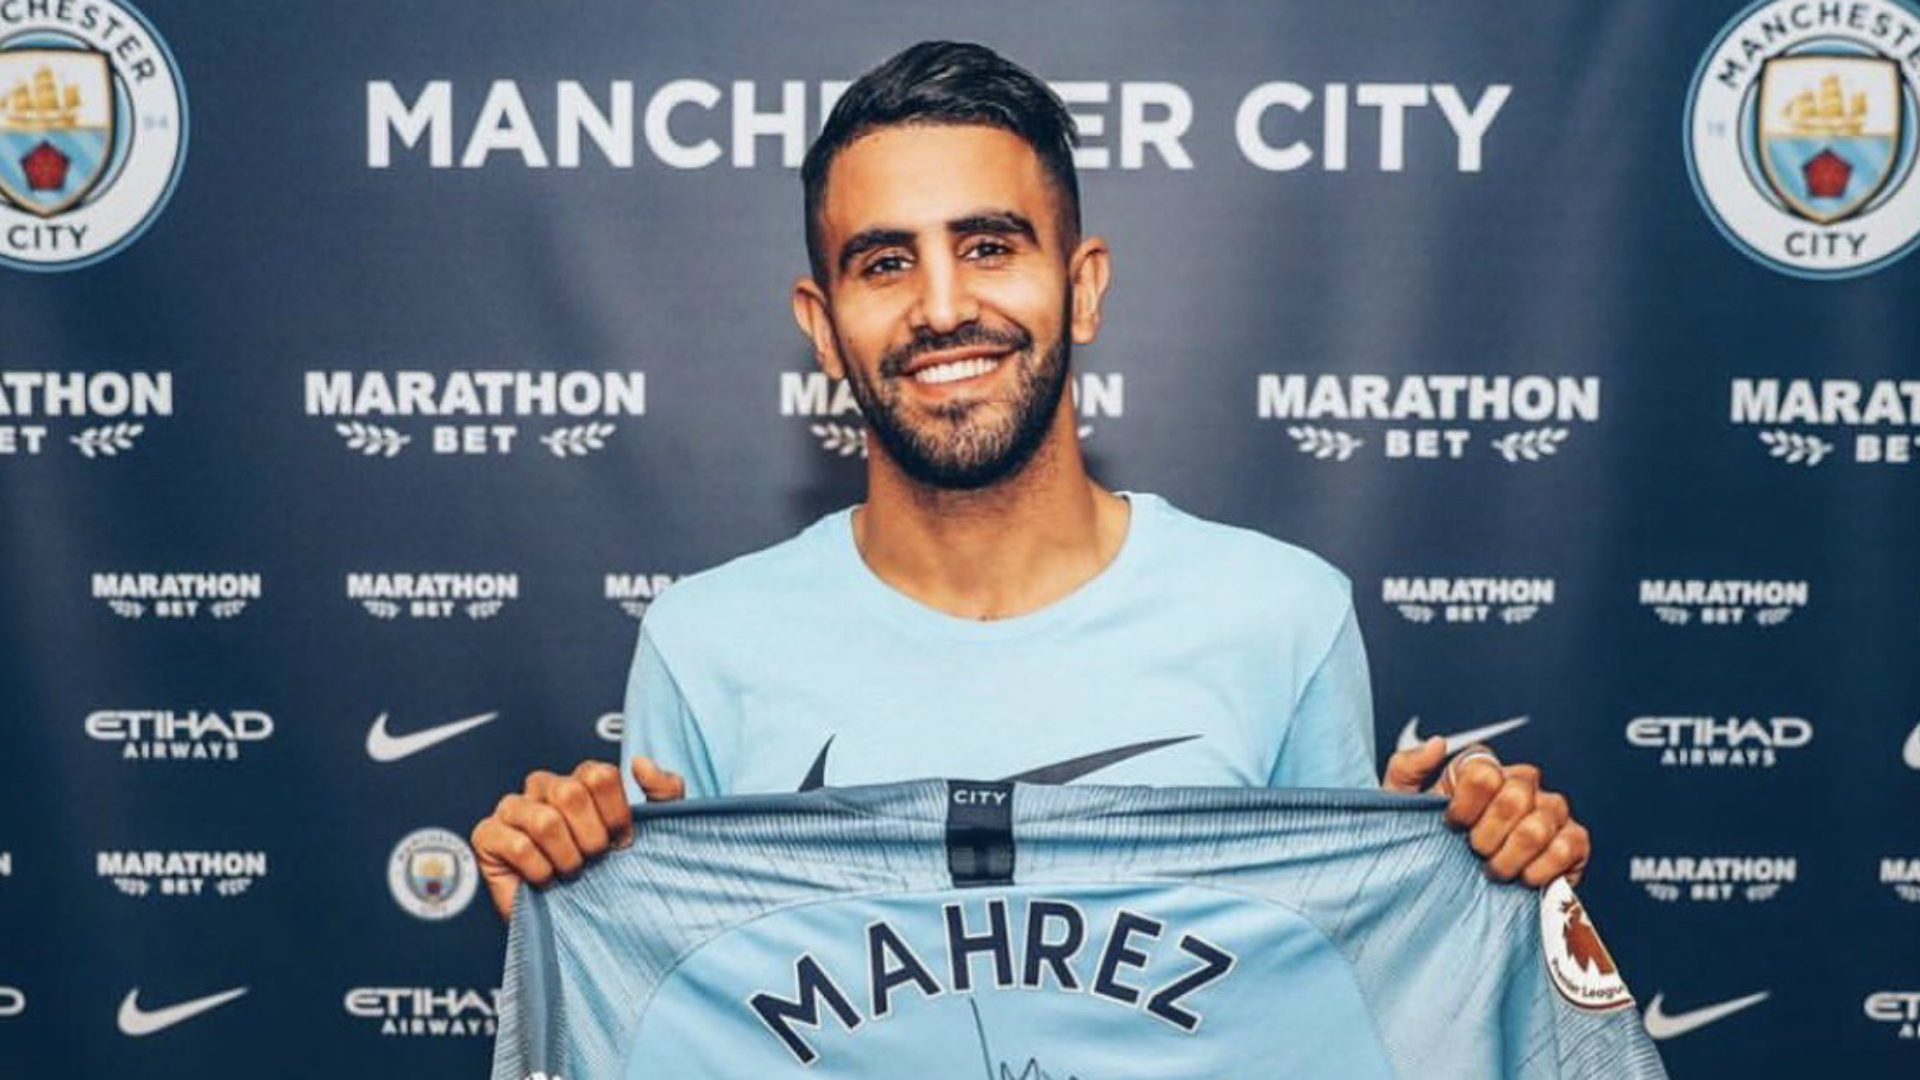 Champions League is target for Manchester City signing Mahrez